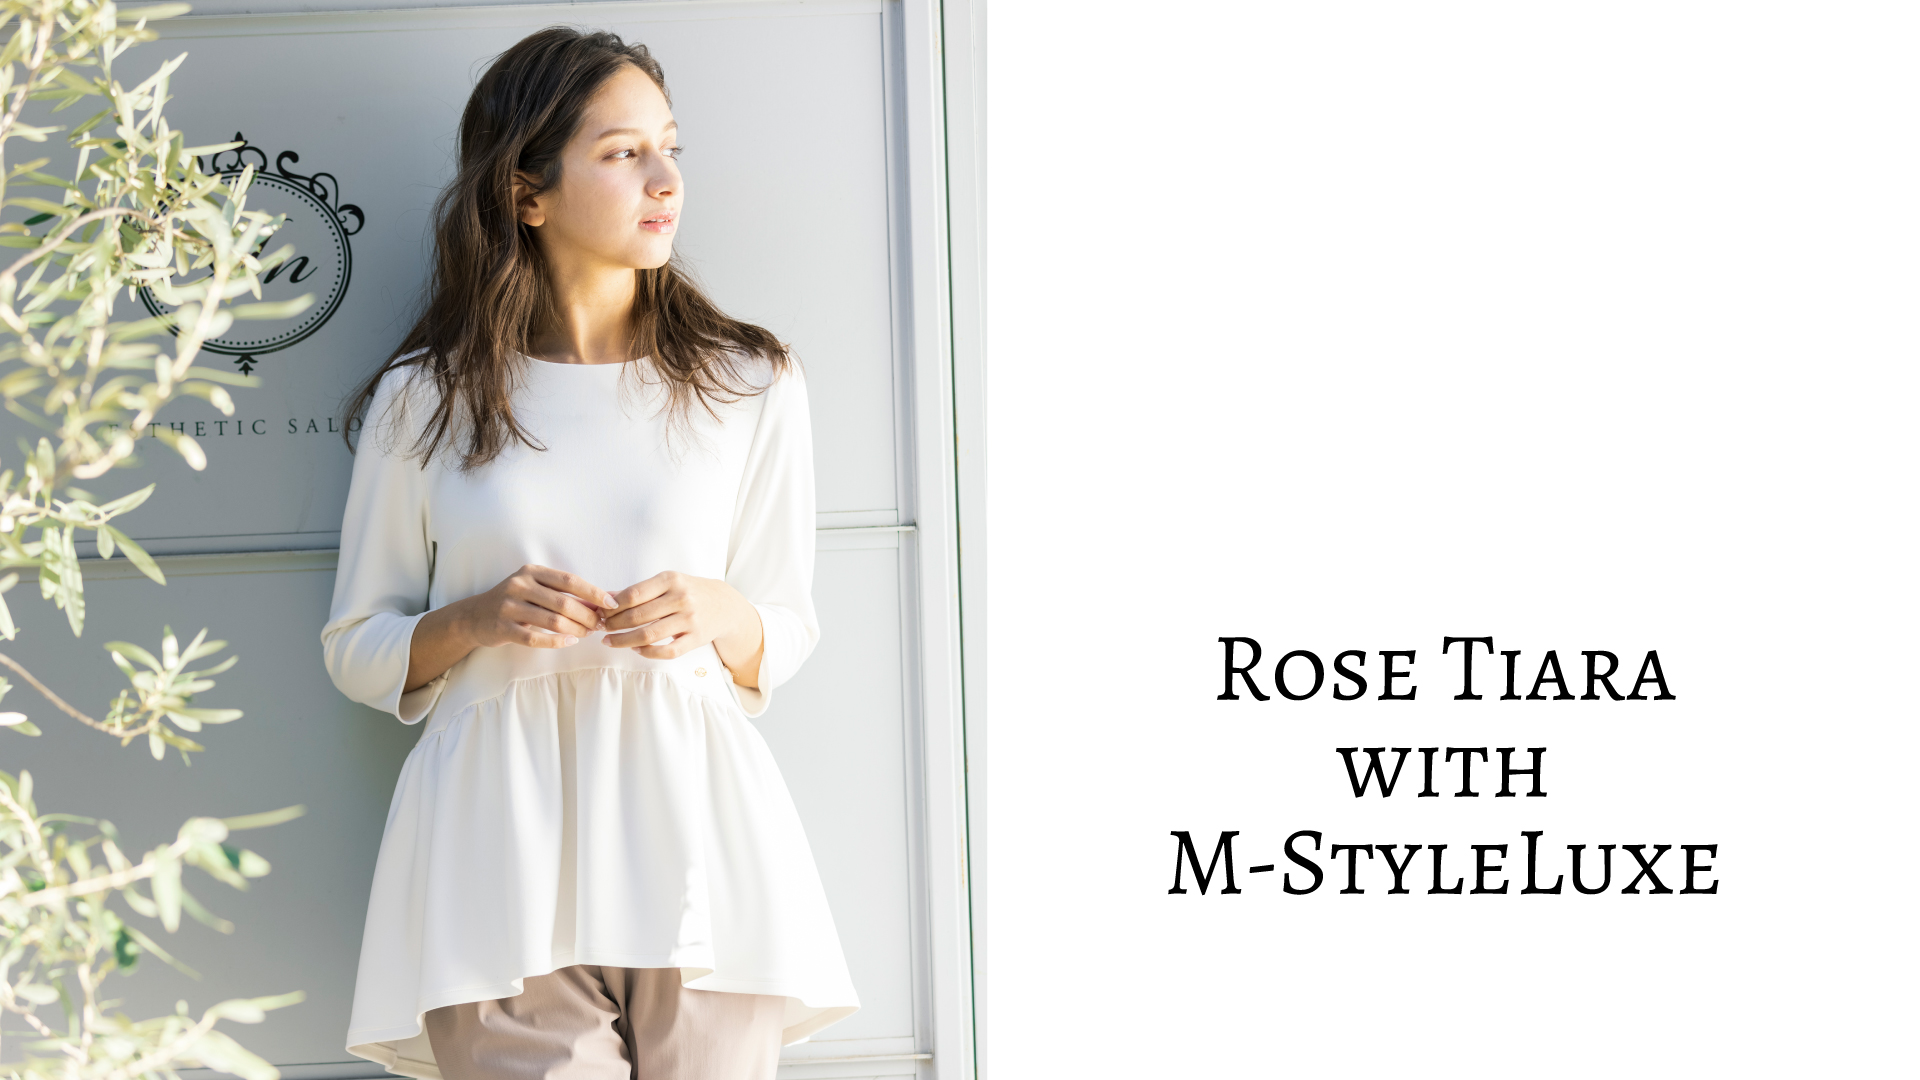 Rose Tiara with M-styleLuxe 01